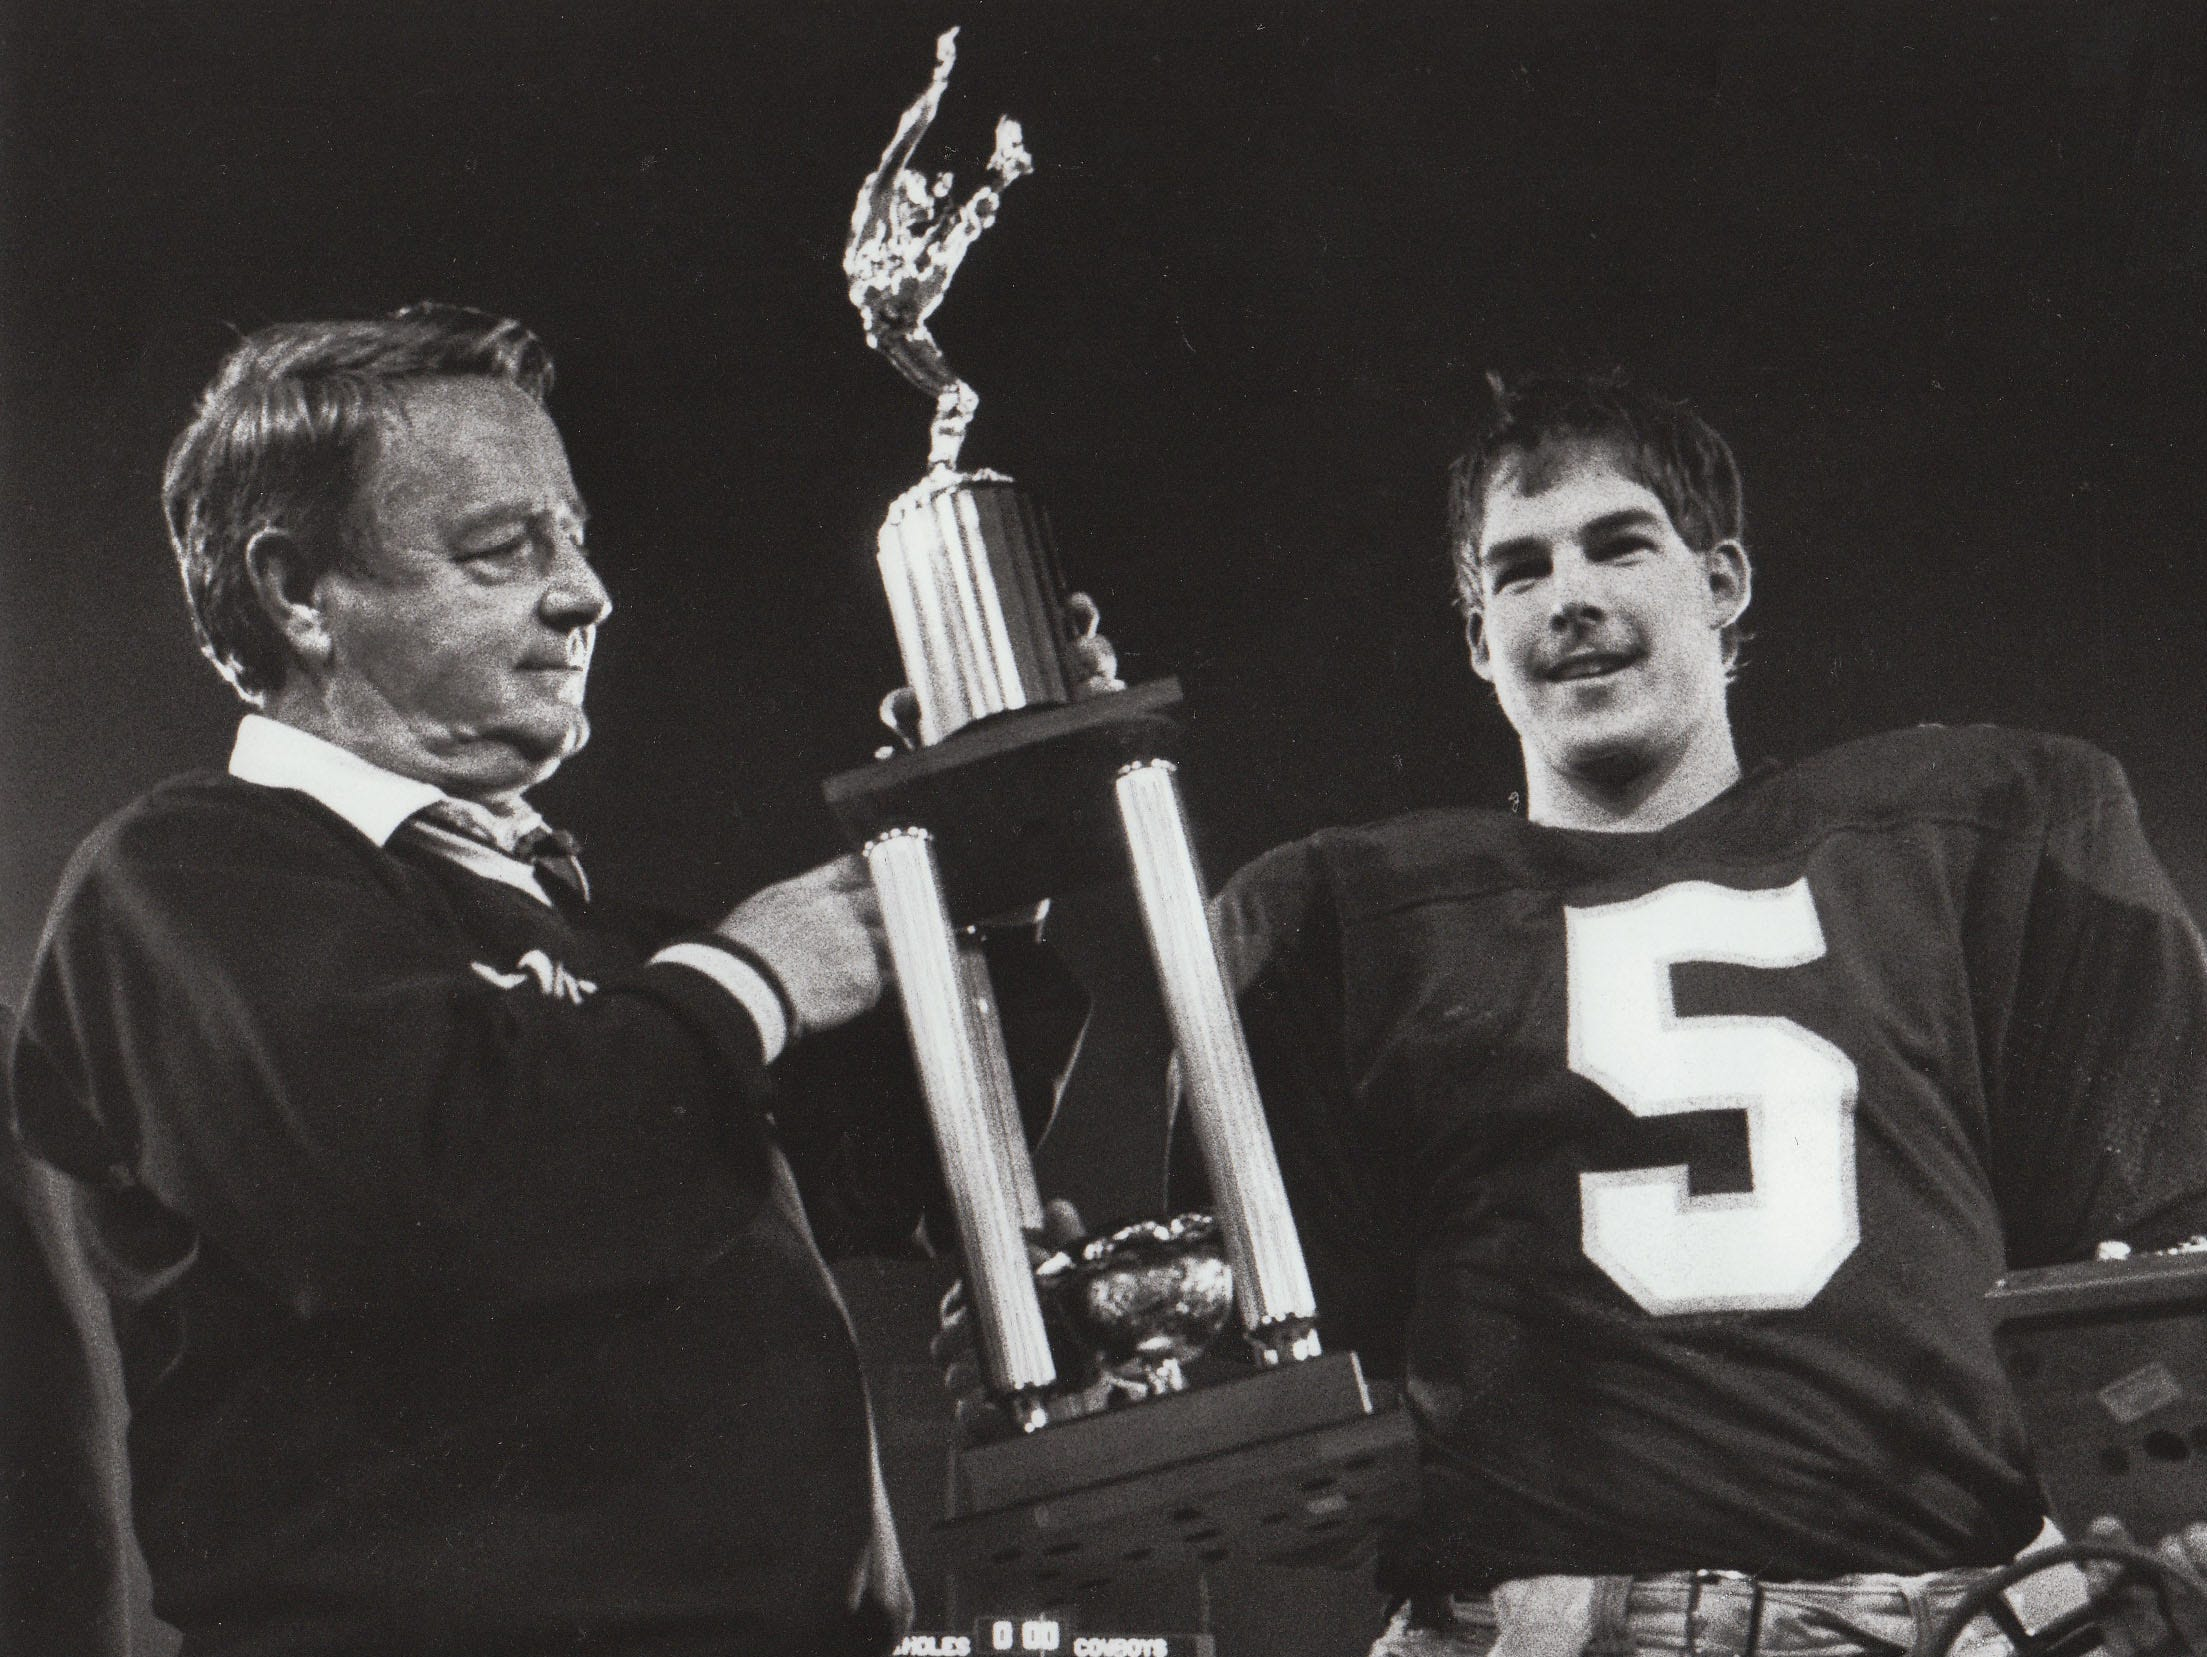 Bobby Bowden and Chip Ferguson hoist the Gator Bowl trophy in 1985 after Ferguson was named the game's MVP.